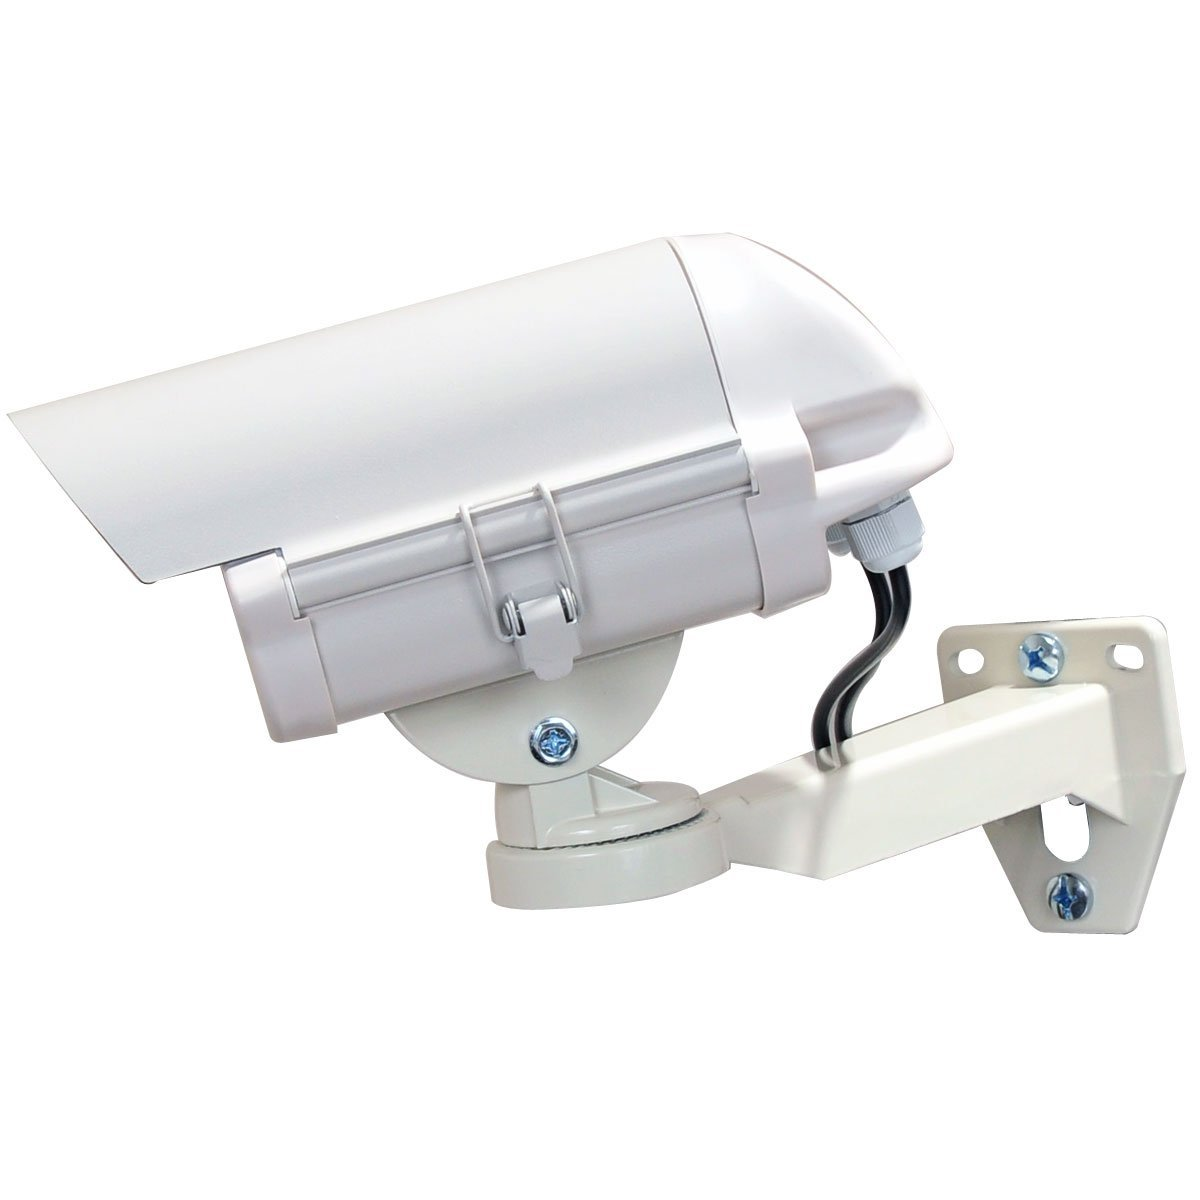 500TVL 36 IR LED CCTV Security Bullet Camera Outdoor Series FLY-2974